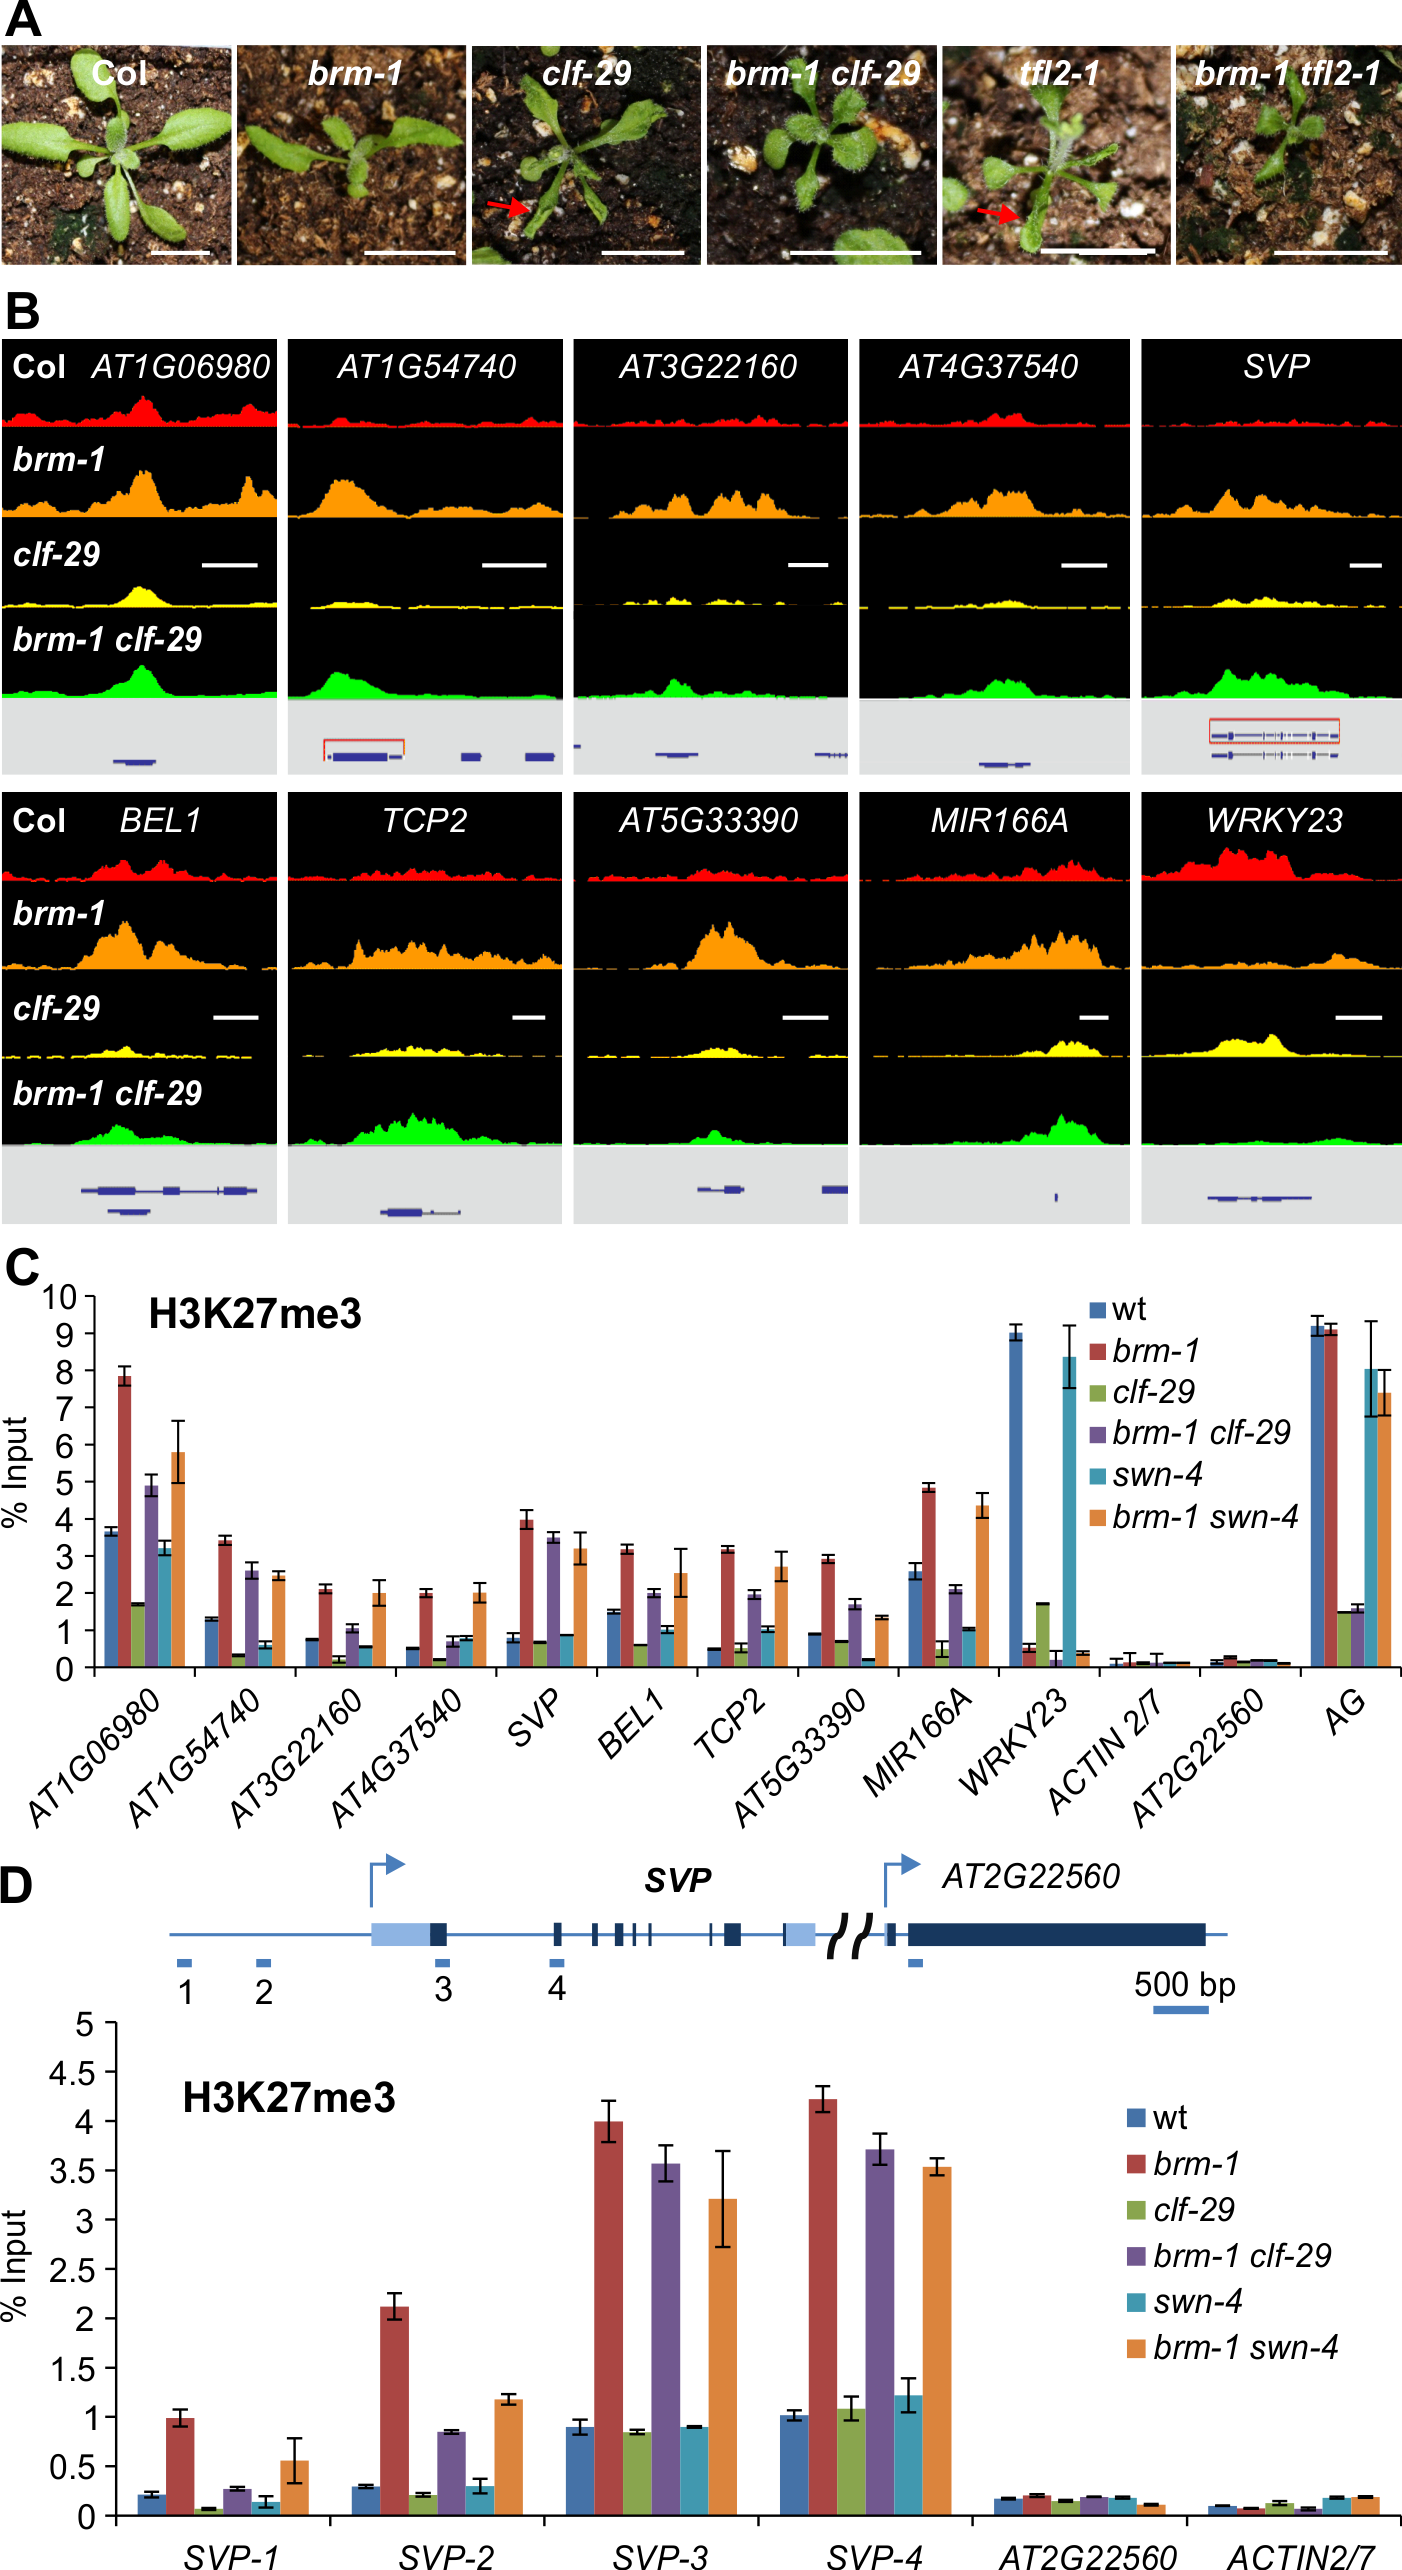 Removal of CLF or SWN activity in <i>brm</i> background results in a substantial decrease of H3K27me3 deposition.